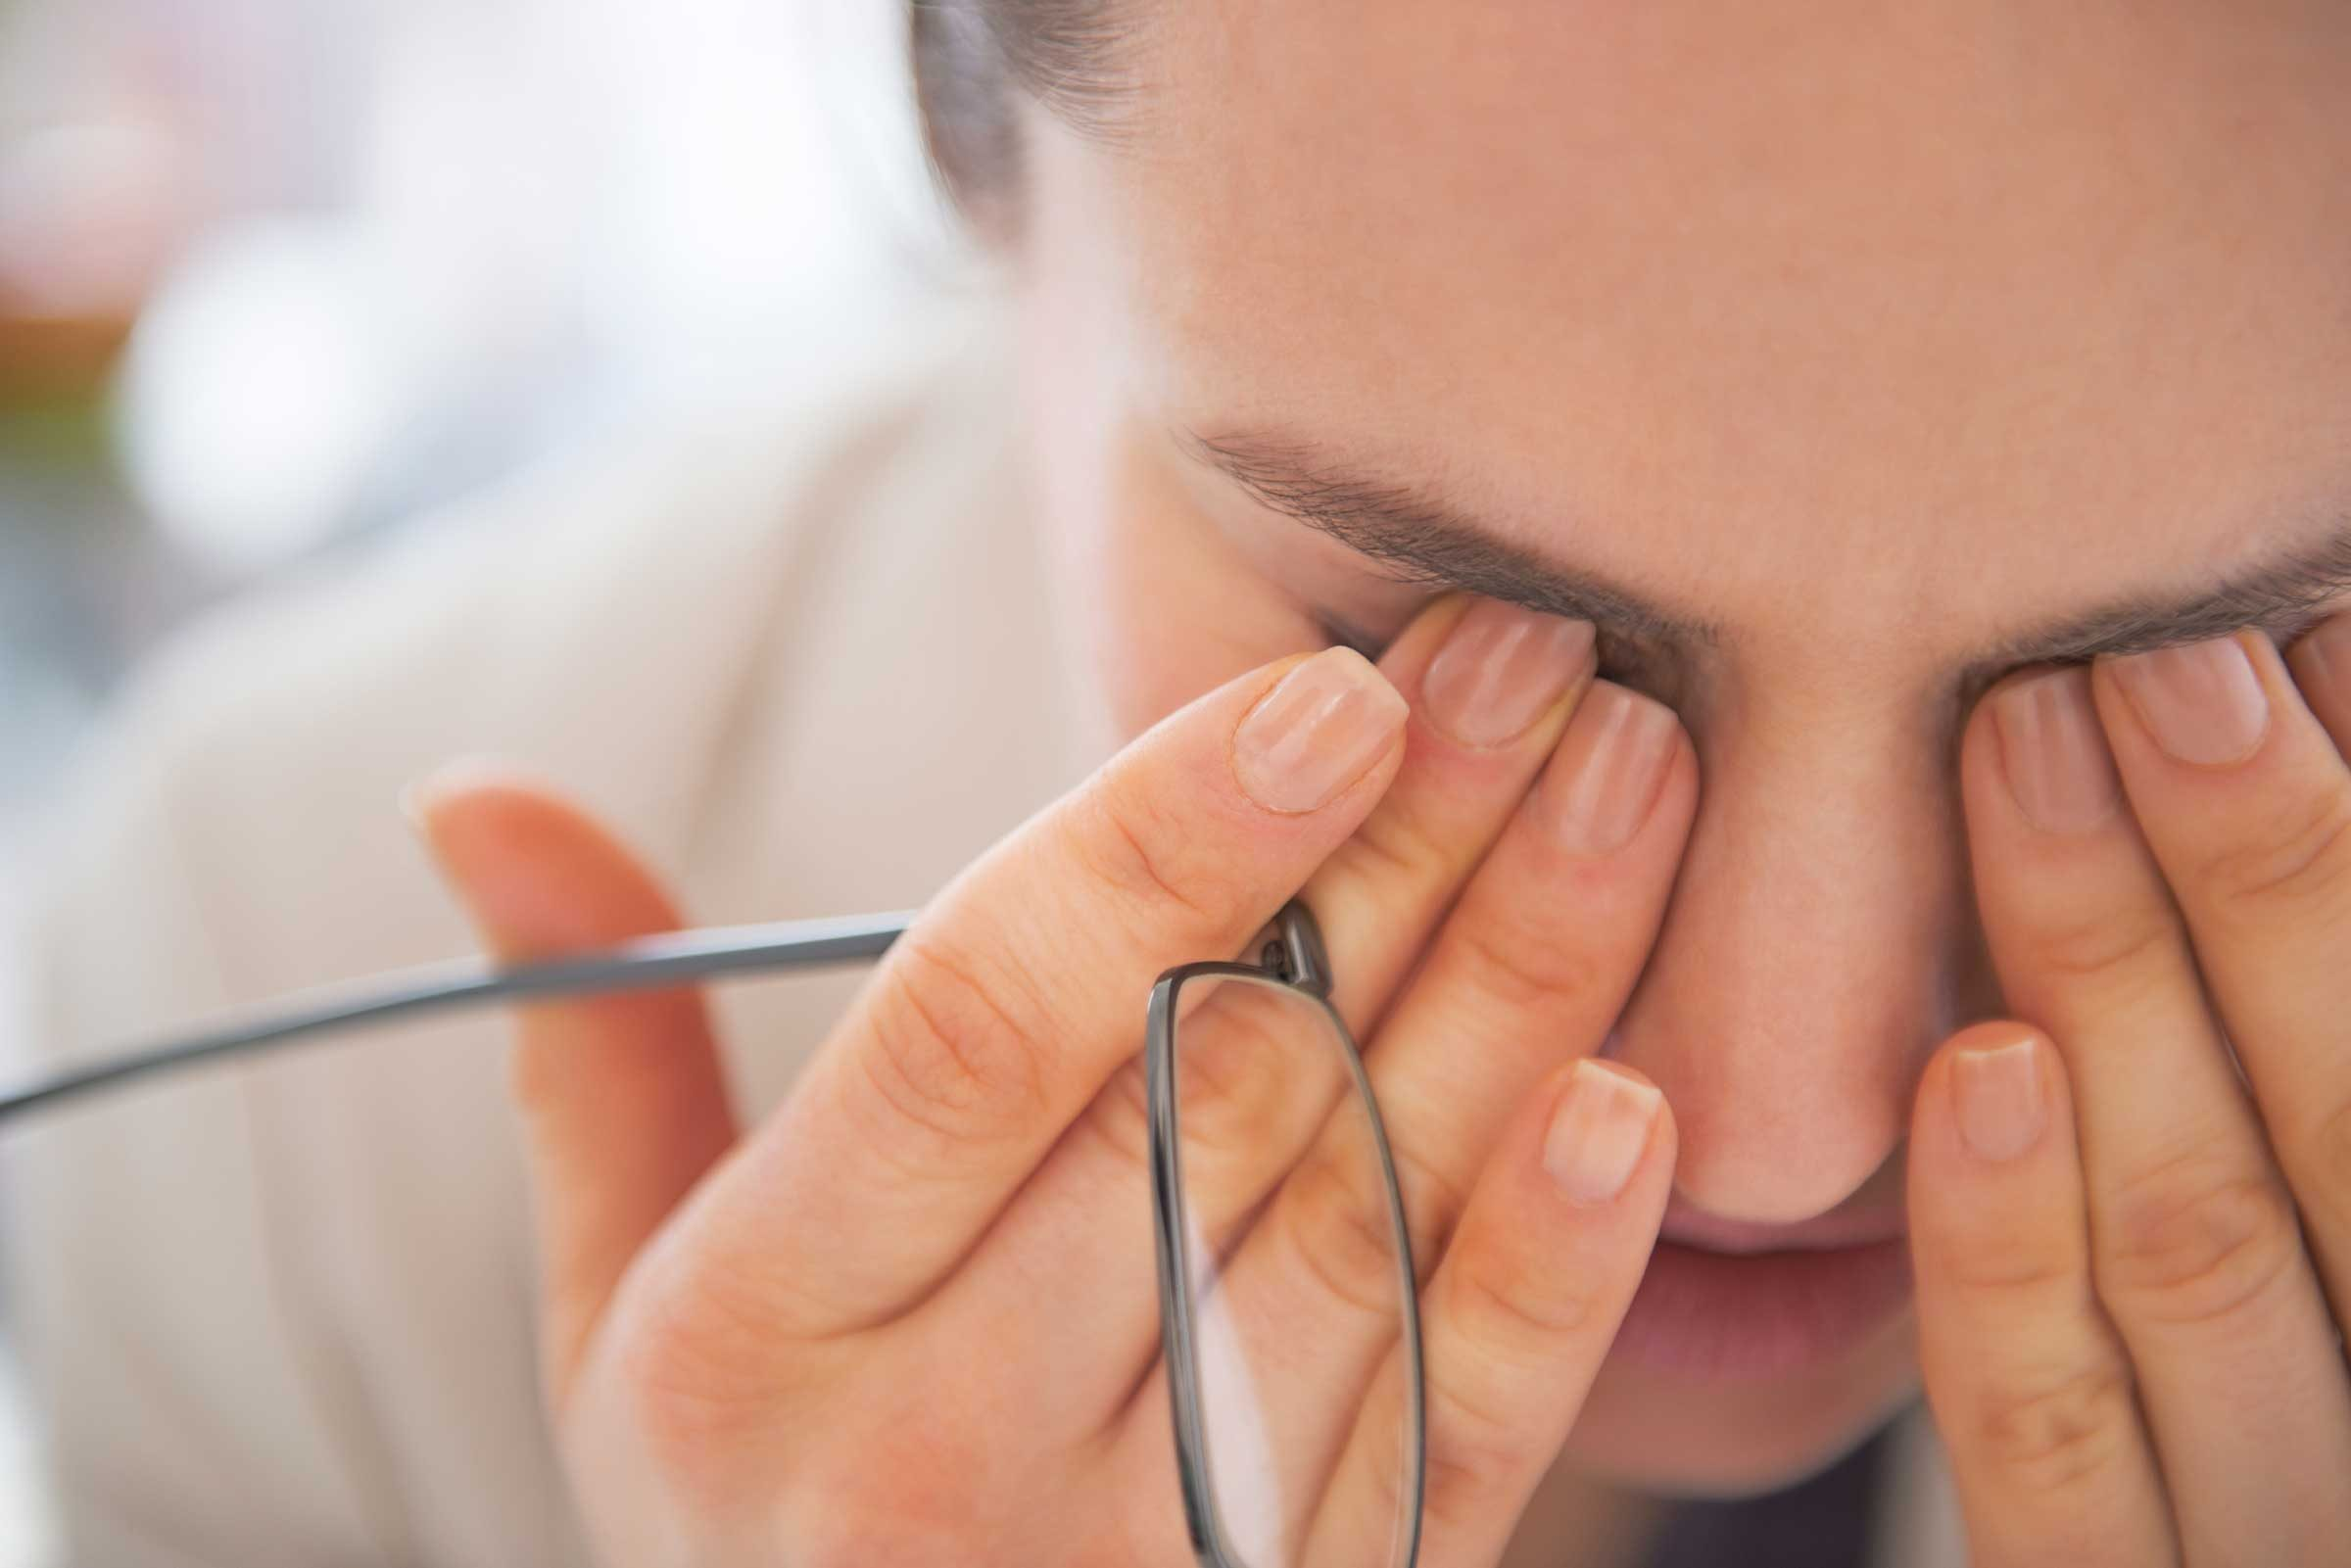 Don't: Trust yourself to gauge how tired you really are